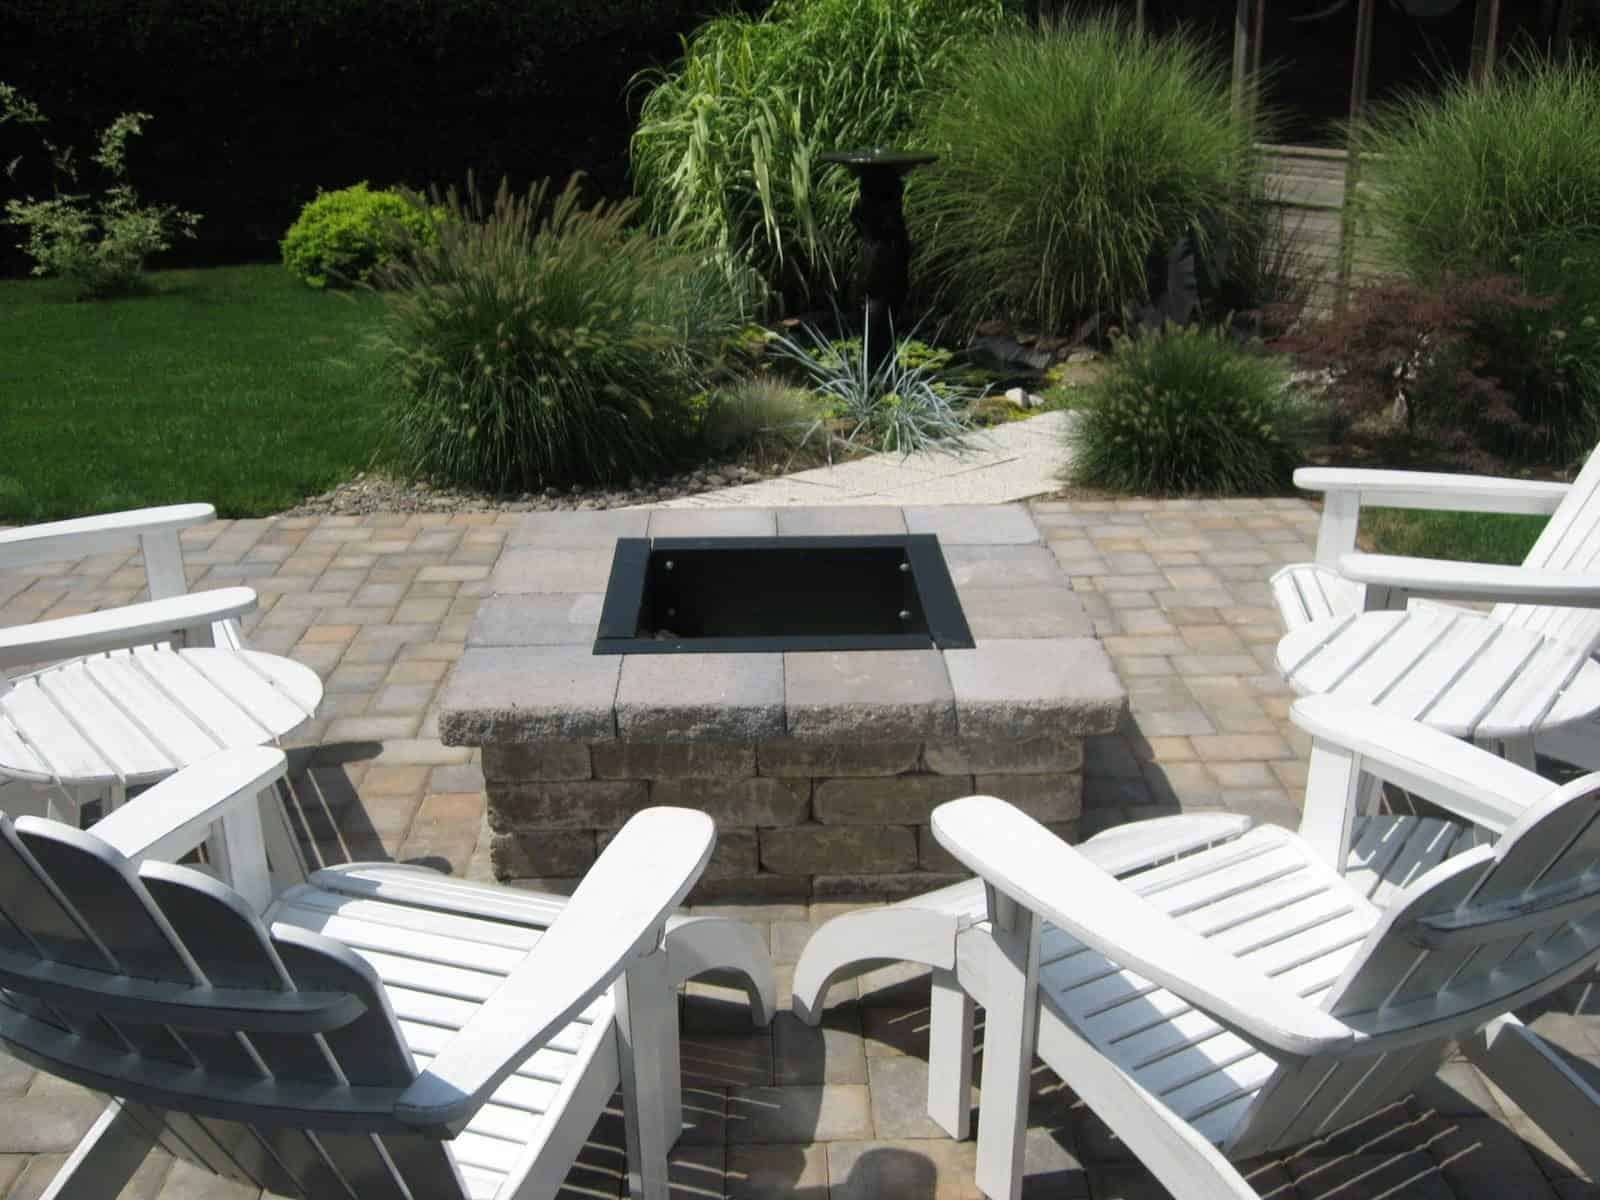 Cambridge - Old English - Color - Toffee/Onyx - Square Fire Pit with grill grate and fire retardant insert - Islip Terrace, Long Island NY